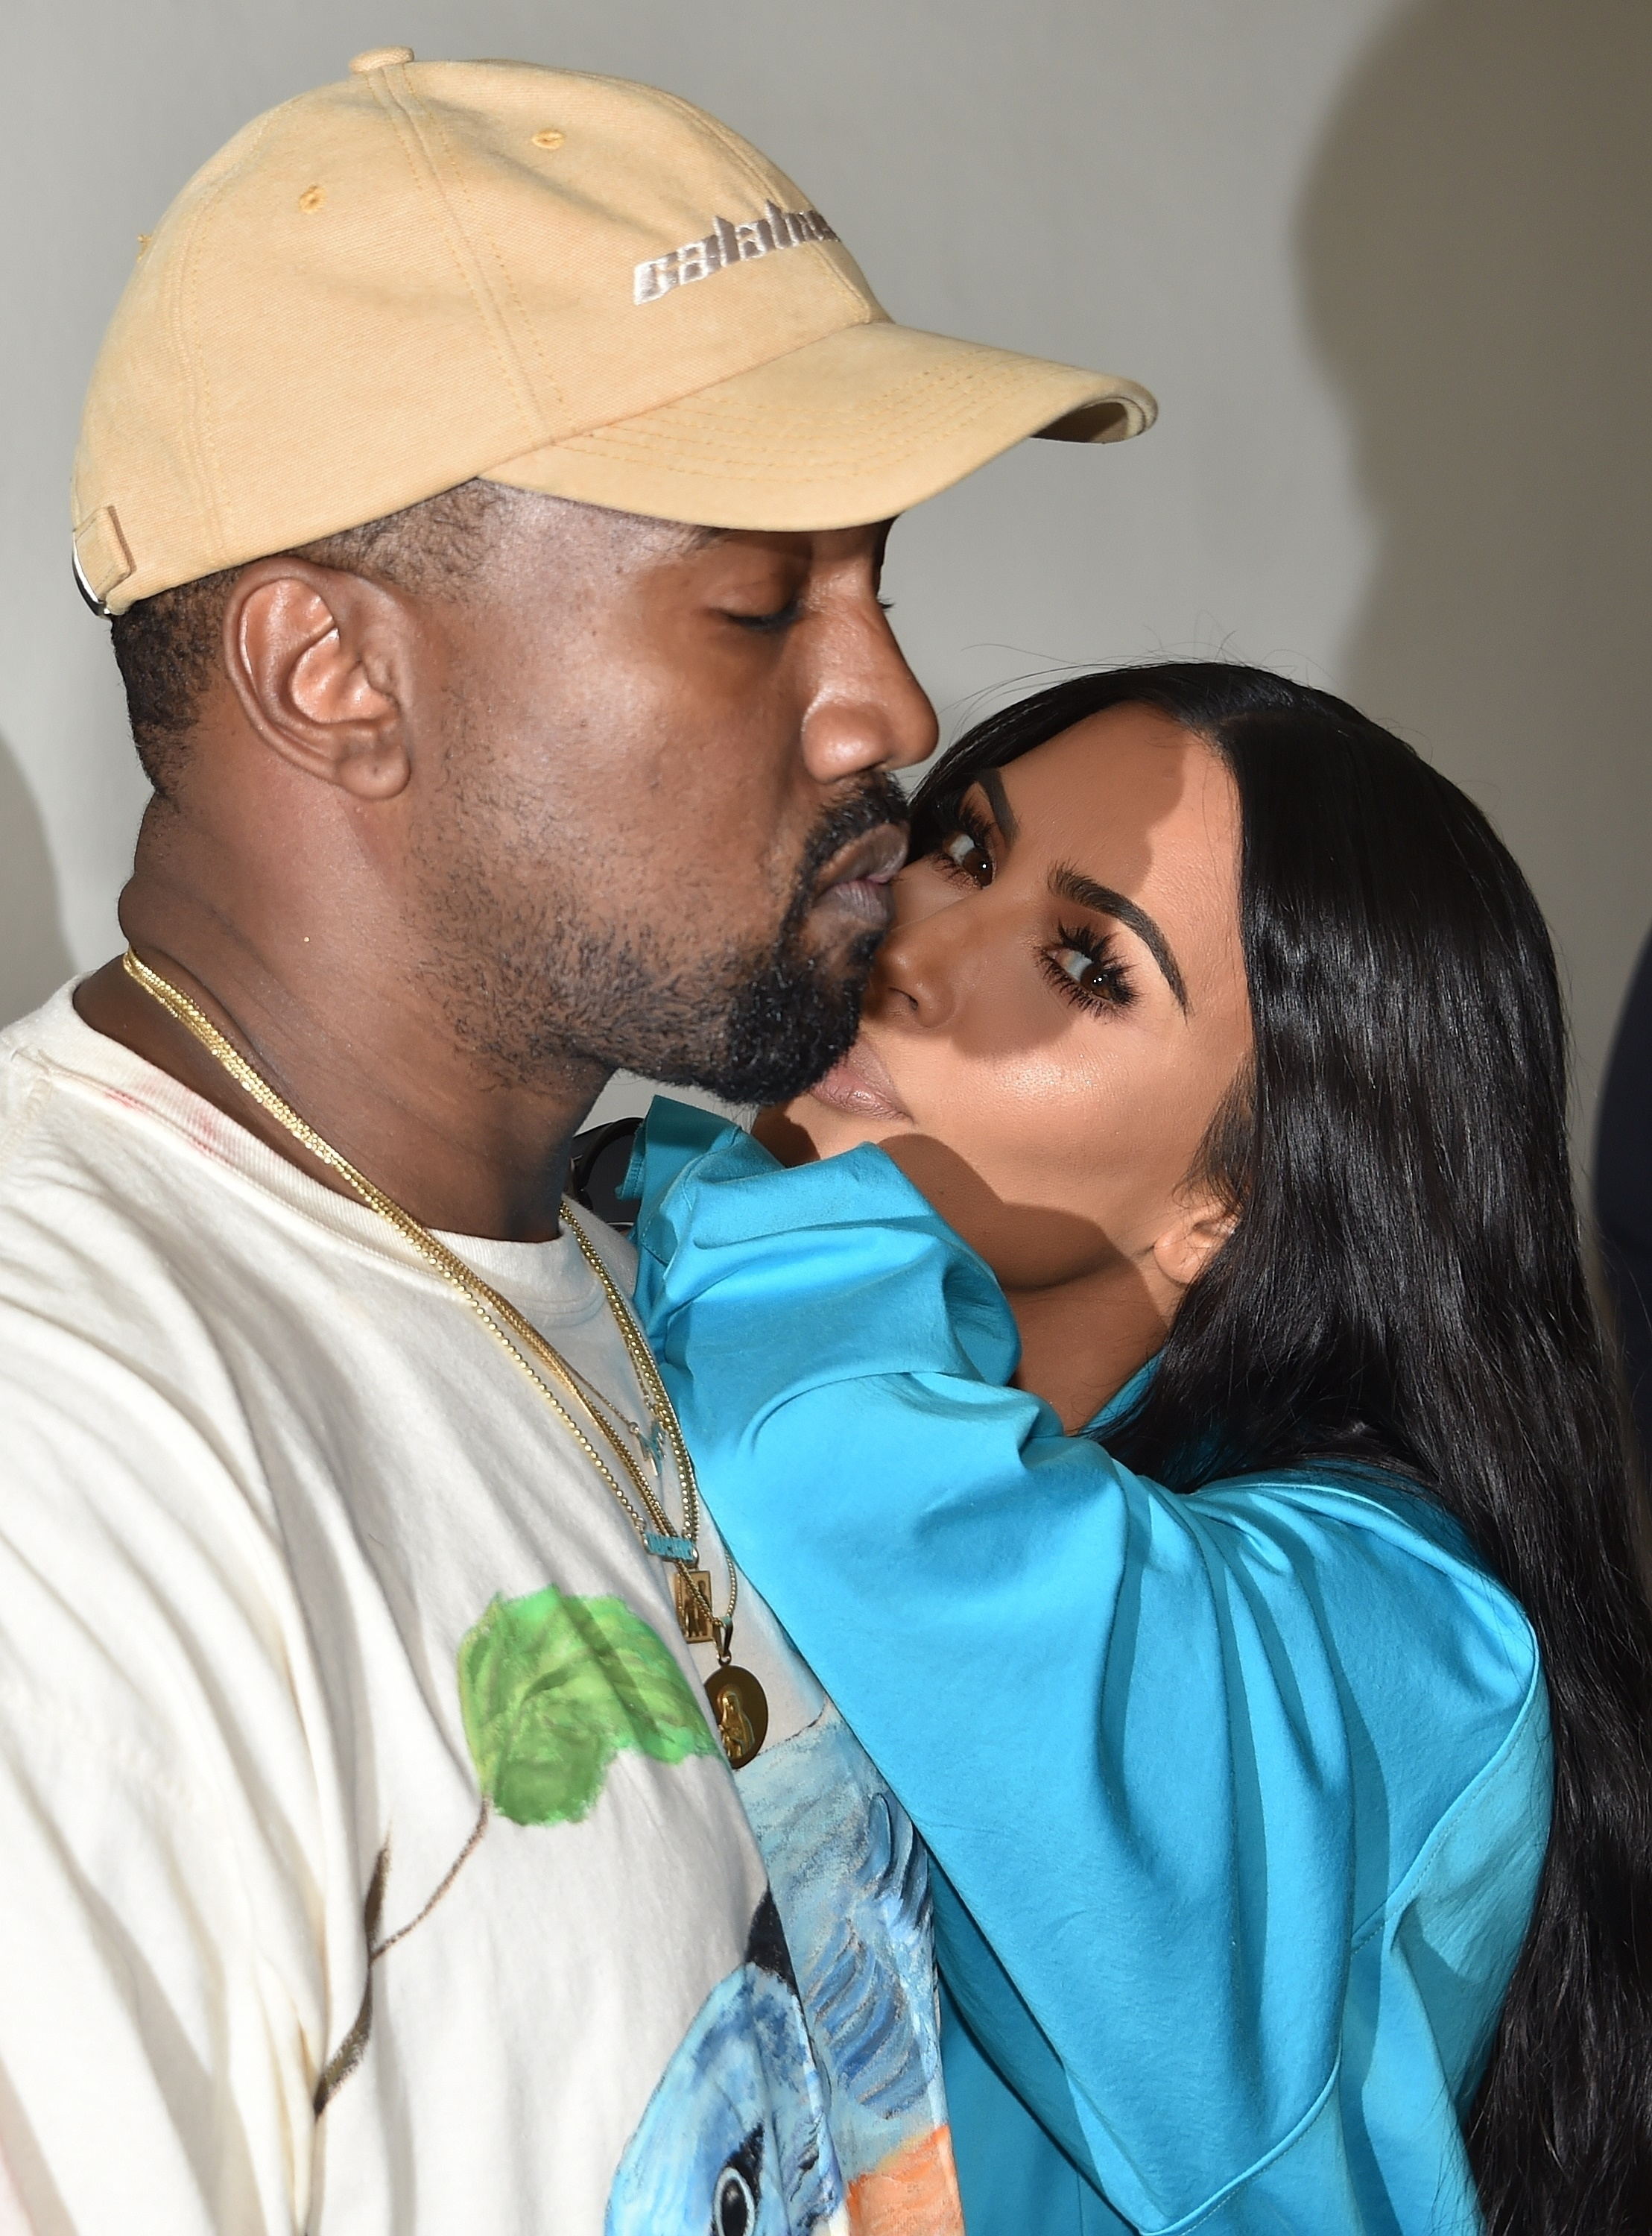 Kim Kardashian West couldn't keep her hands off husband Kanye West at the Louis Vuitton fashion show in Paris on June 21, 2018.